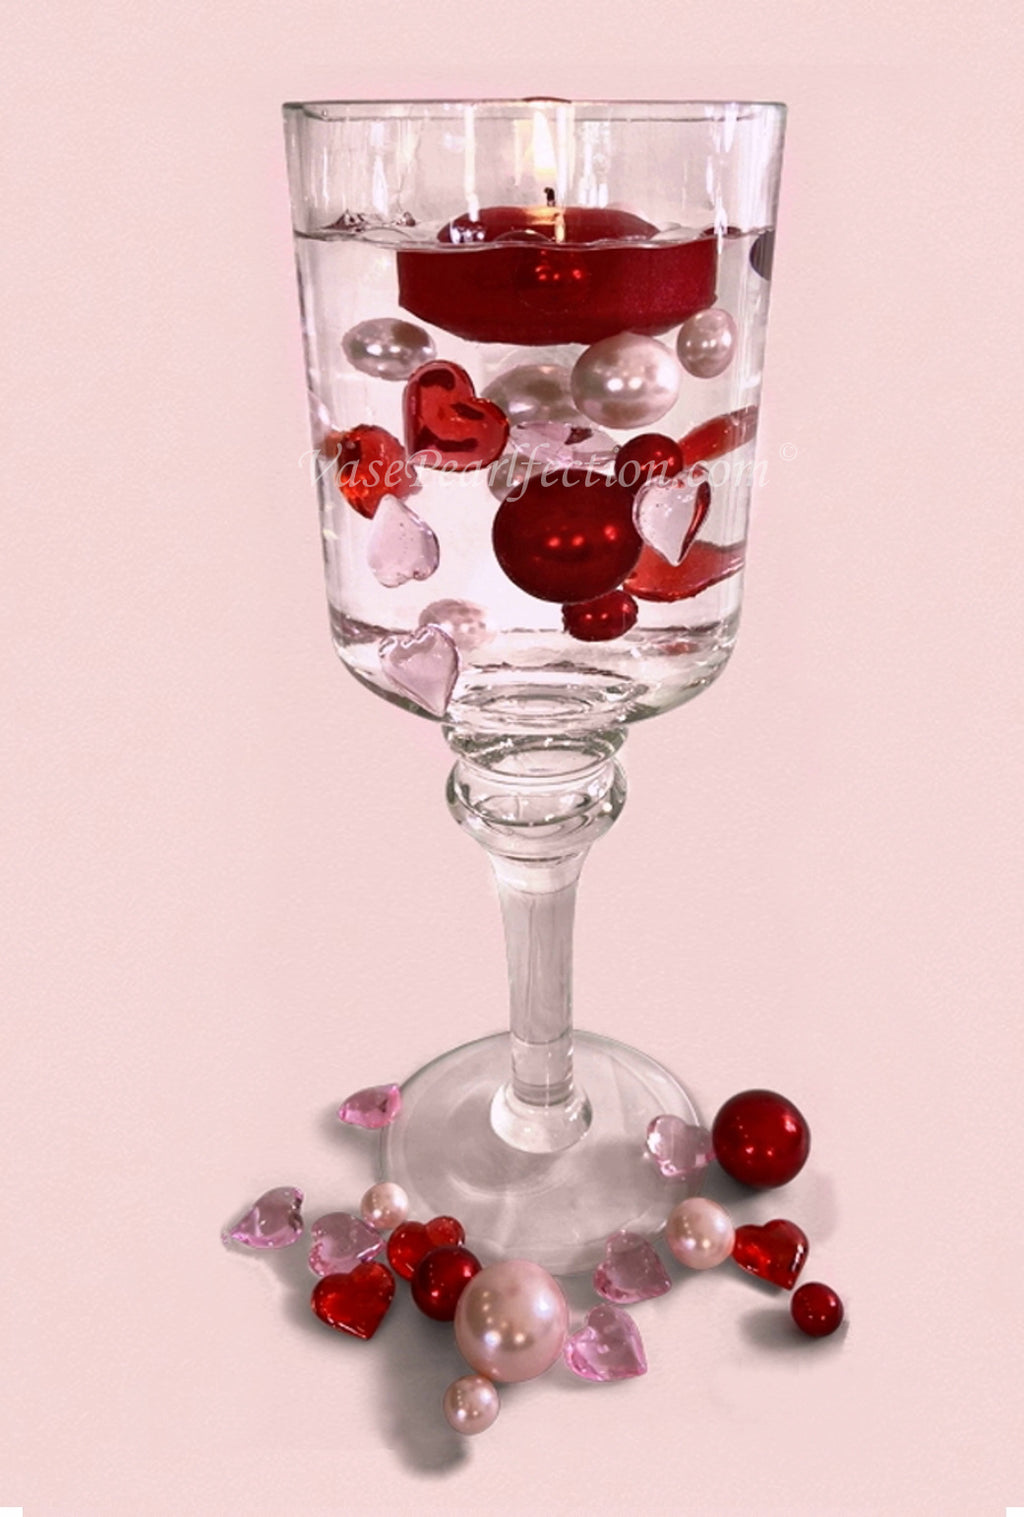 Floating Valentine Red & Light Pink Pearls with Matching Heart Gems - No Hole Jumbo/Assorted Sizes Vase Fillers for Vase Decorations and Table Scatter